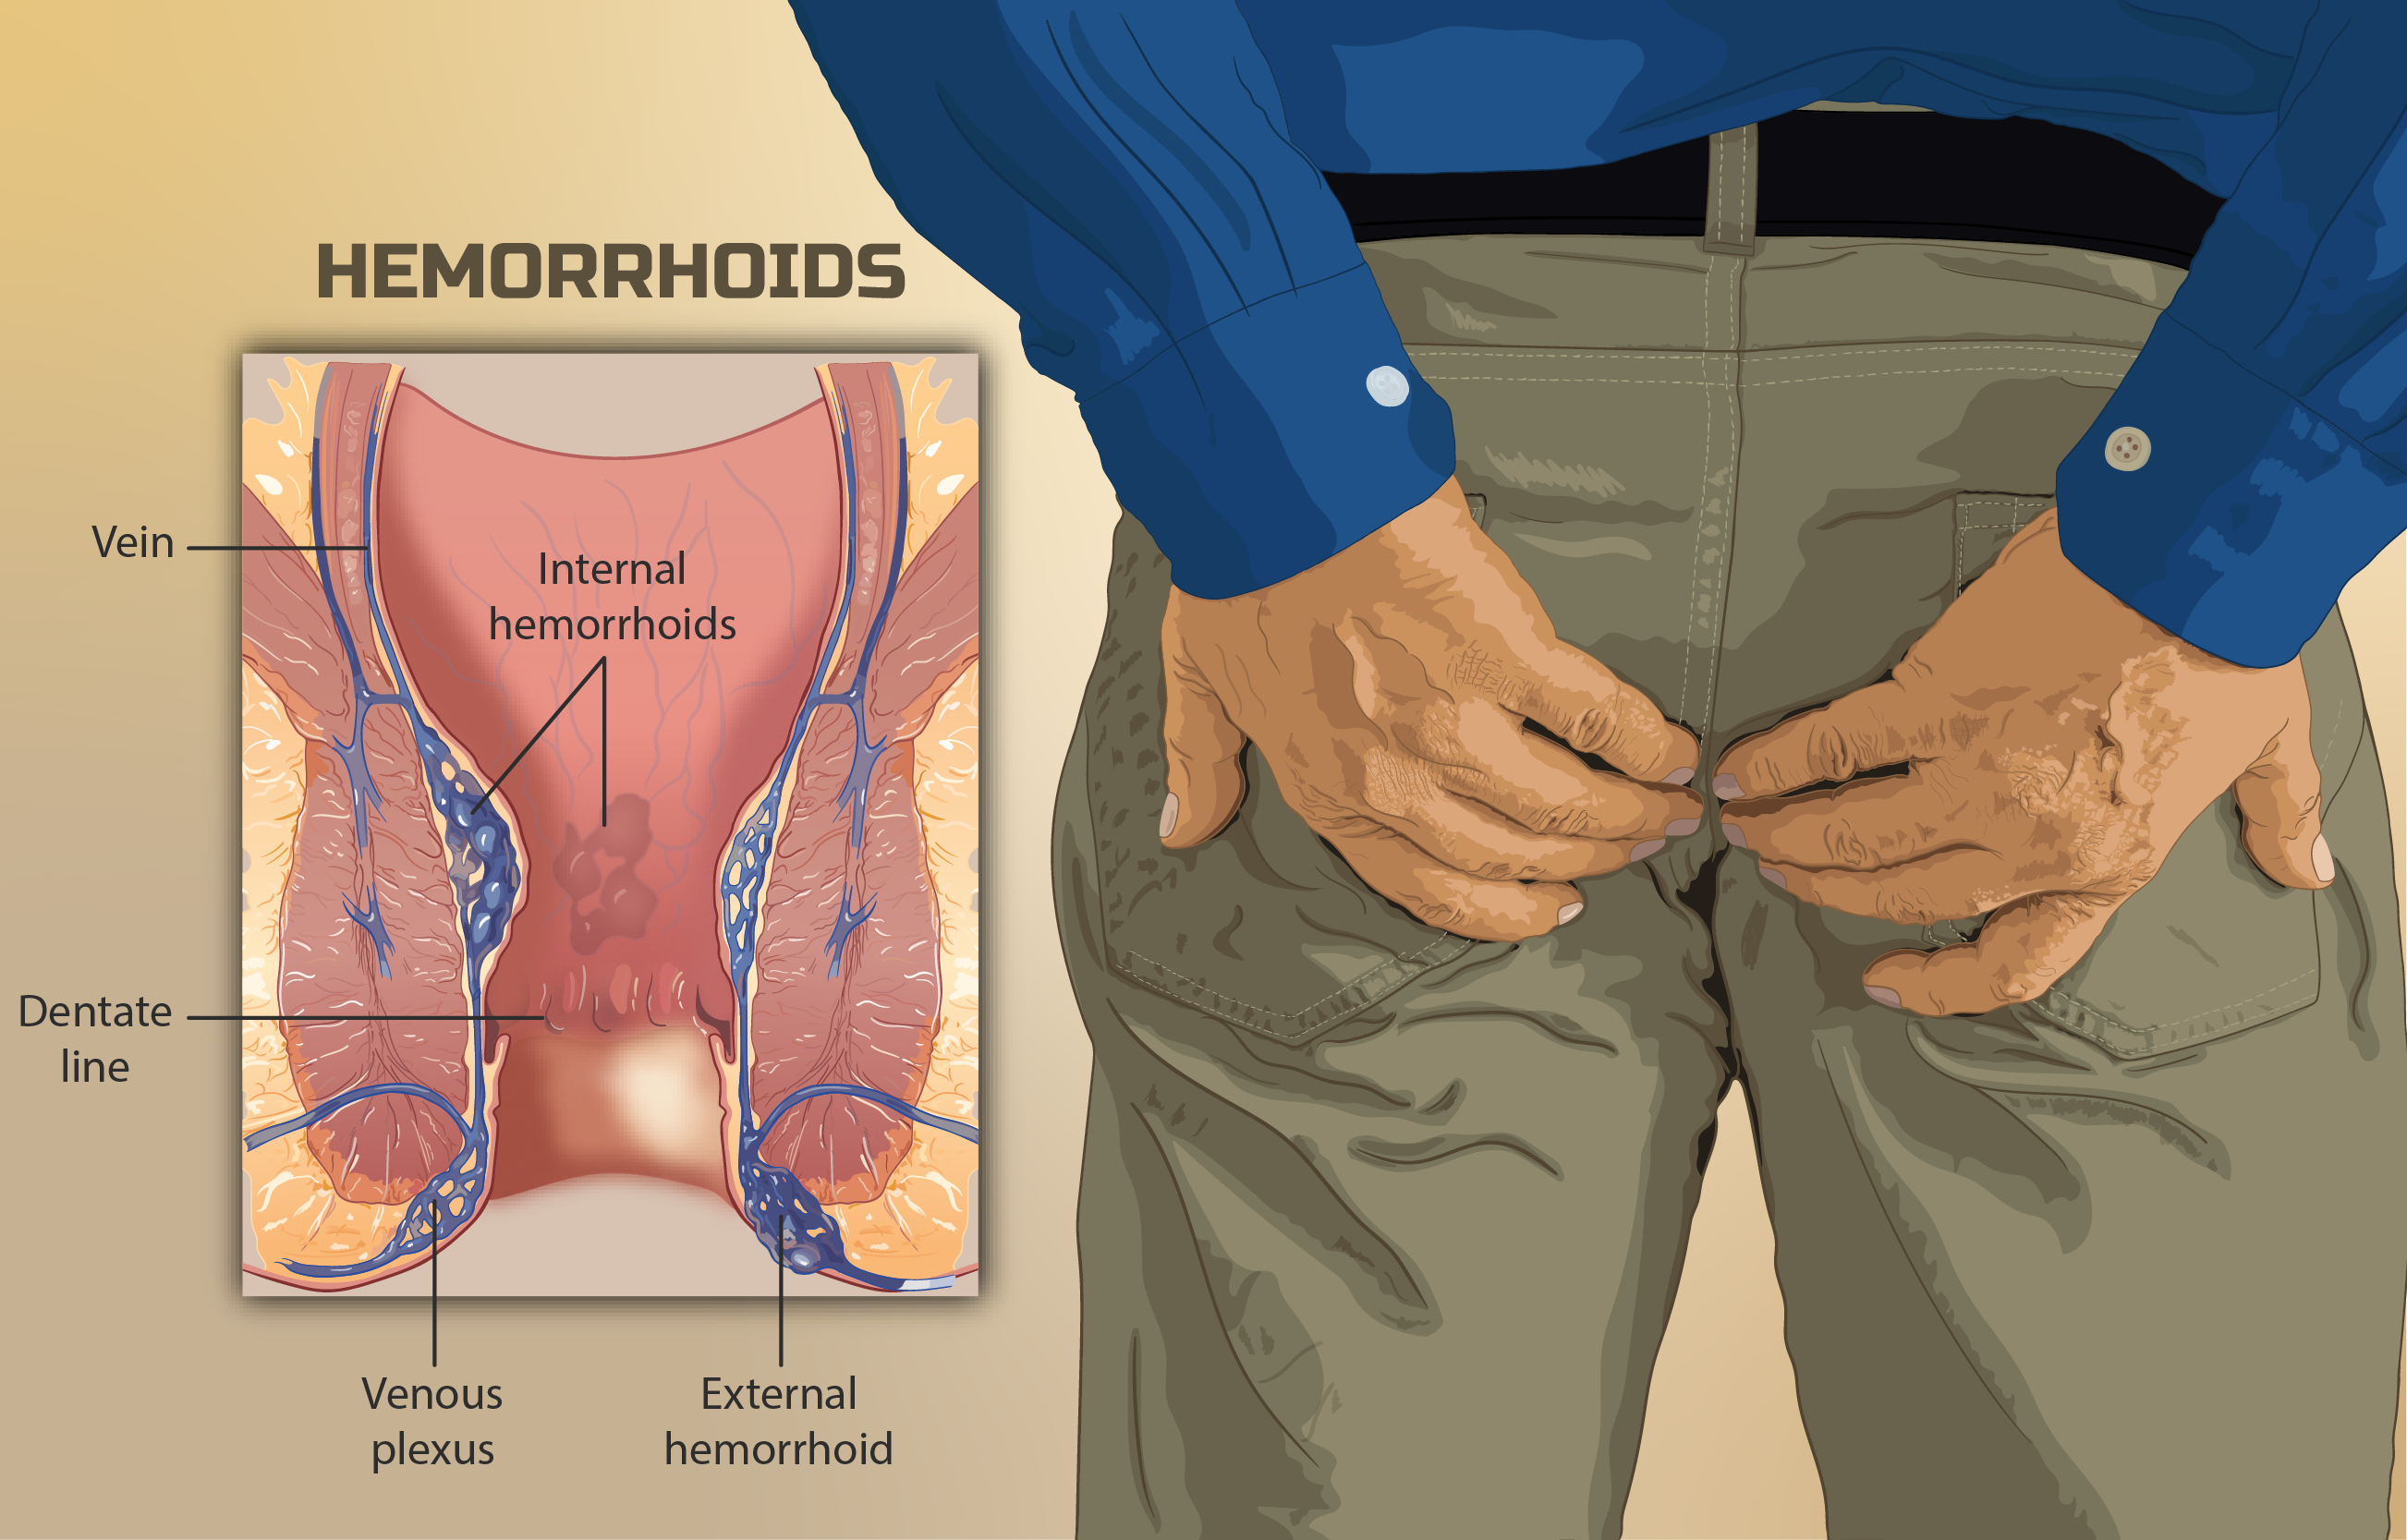 Piles Symptoms: How to Cure Piles Permanently at Home